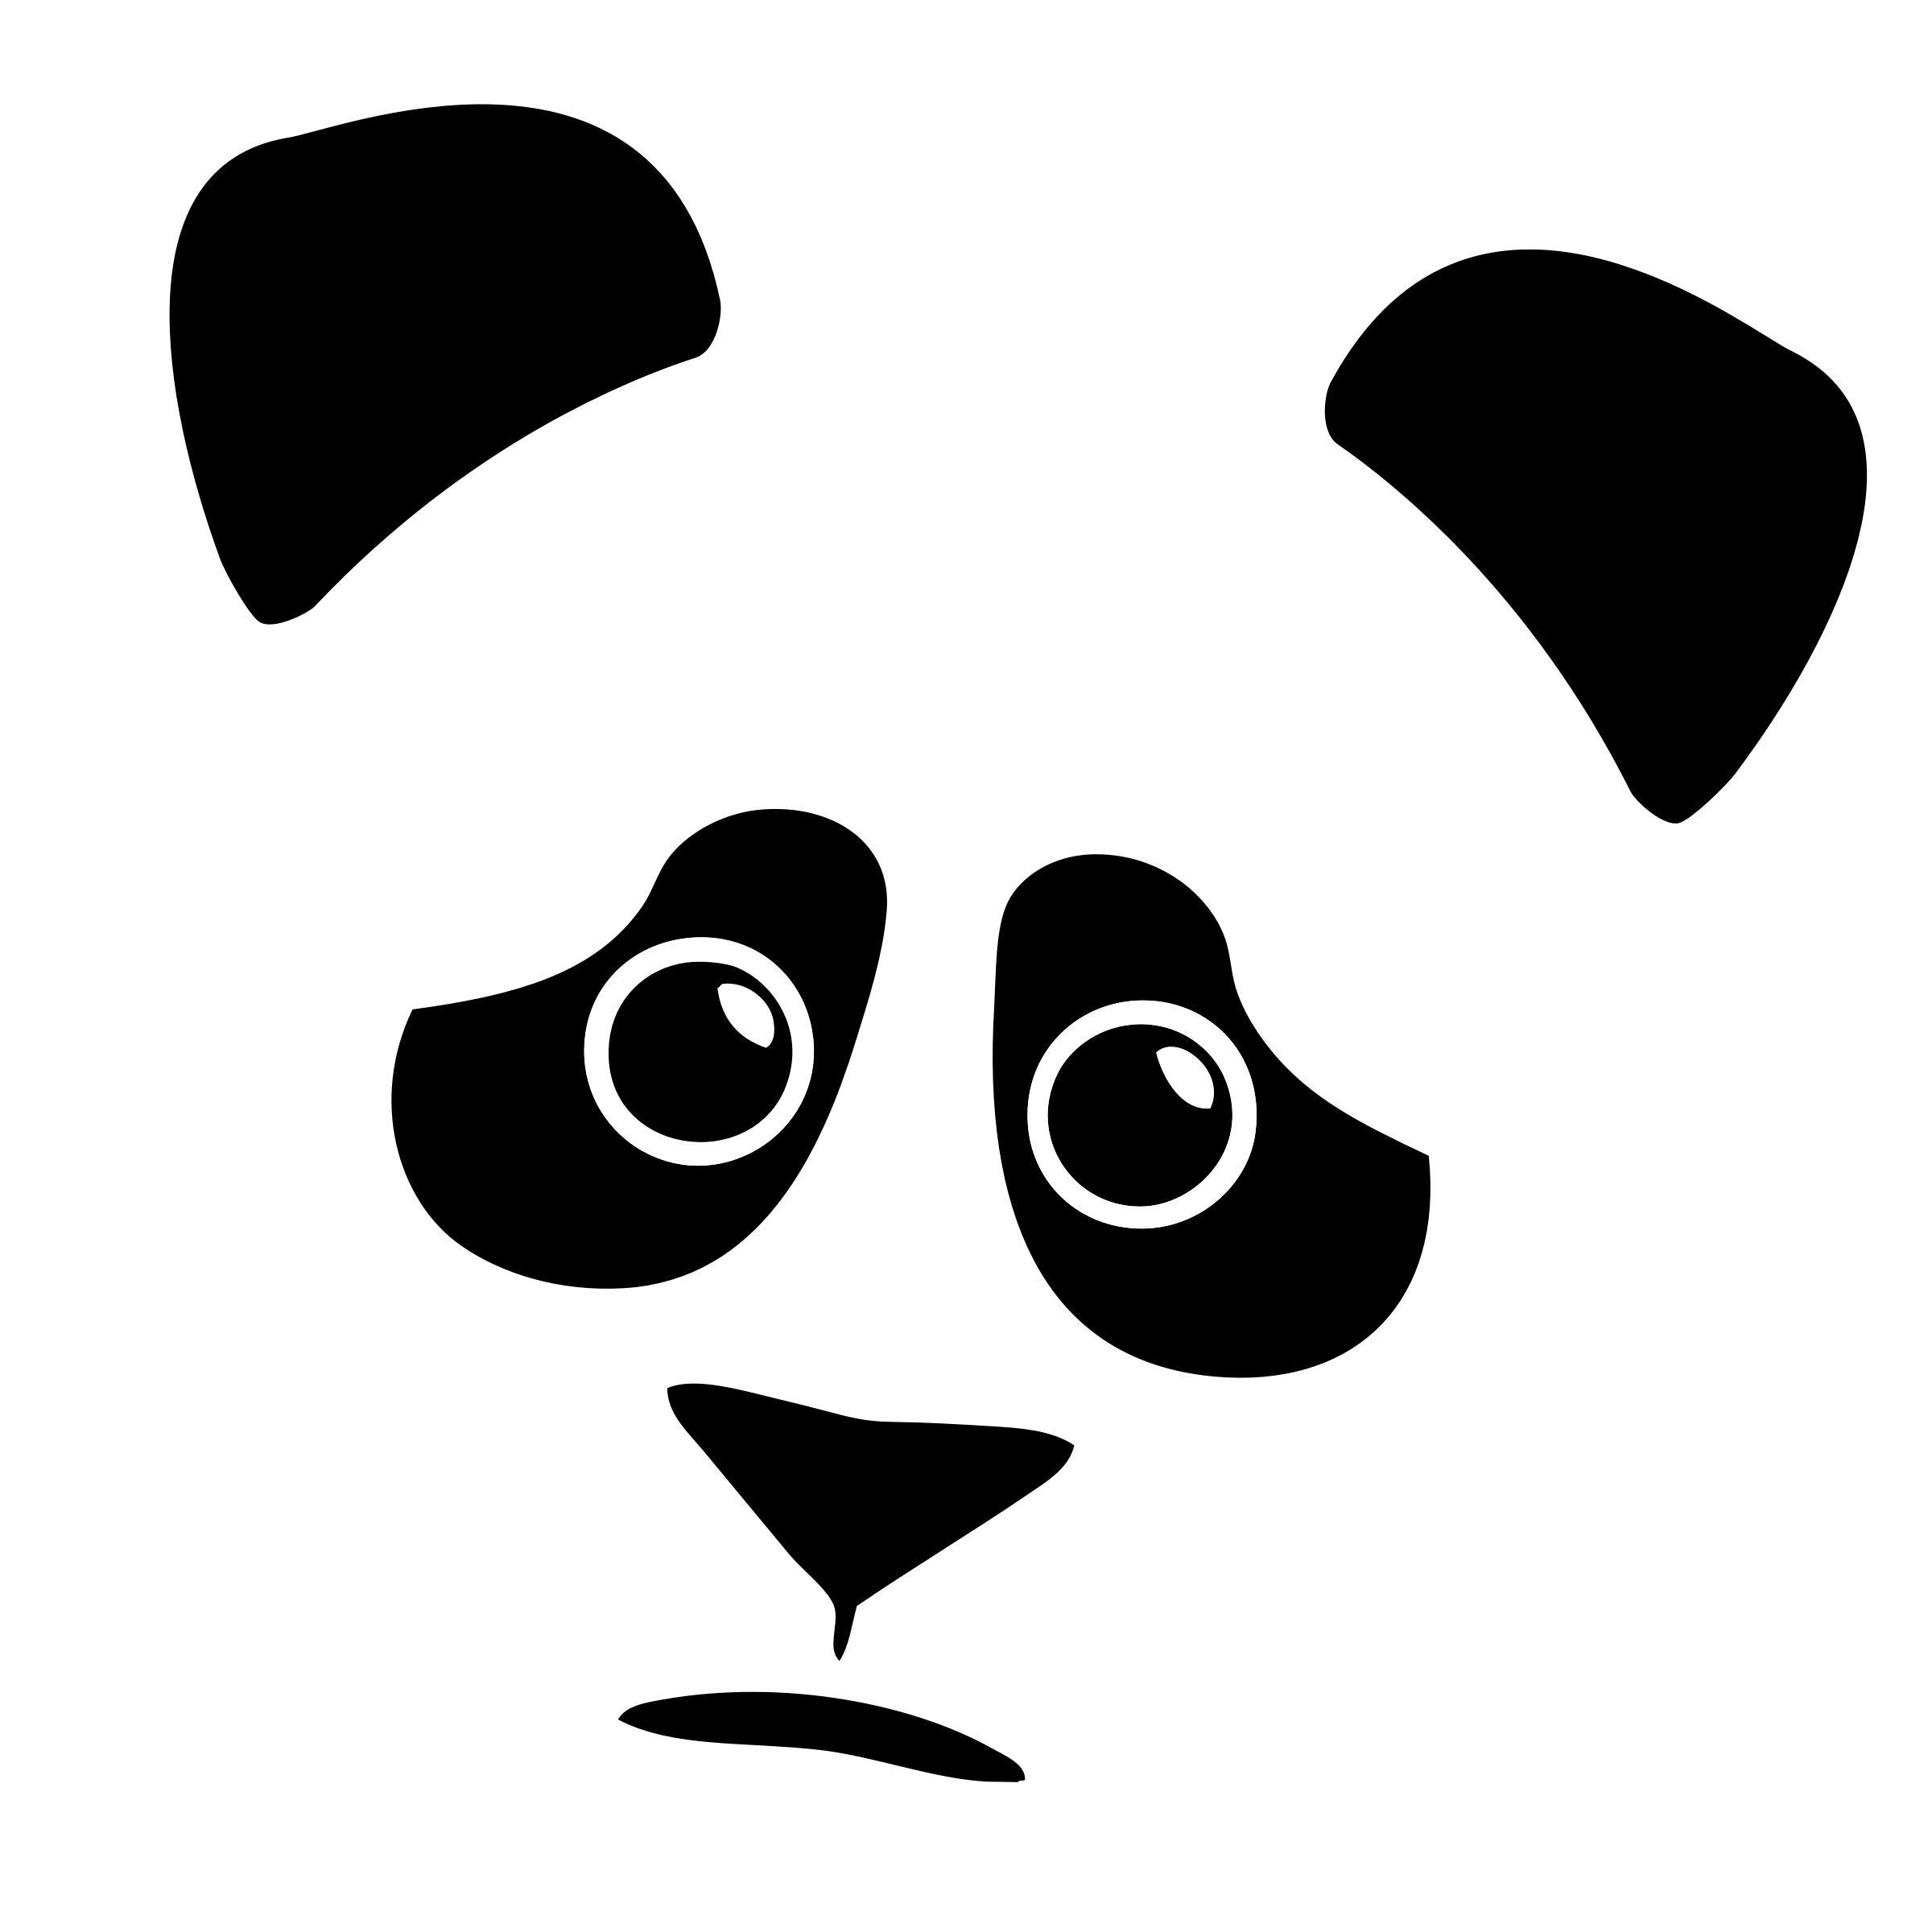 https://openclipart.org/image/2400px/svg_to_png/220597/bravepanda_logo.png